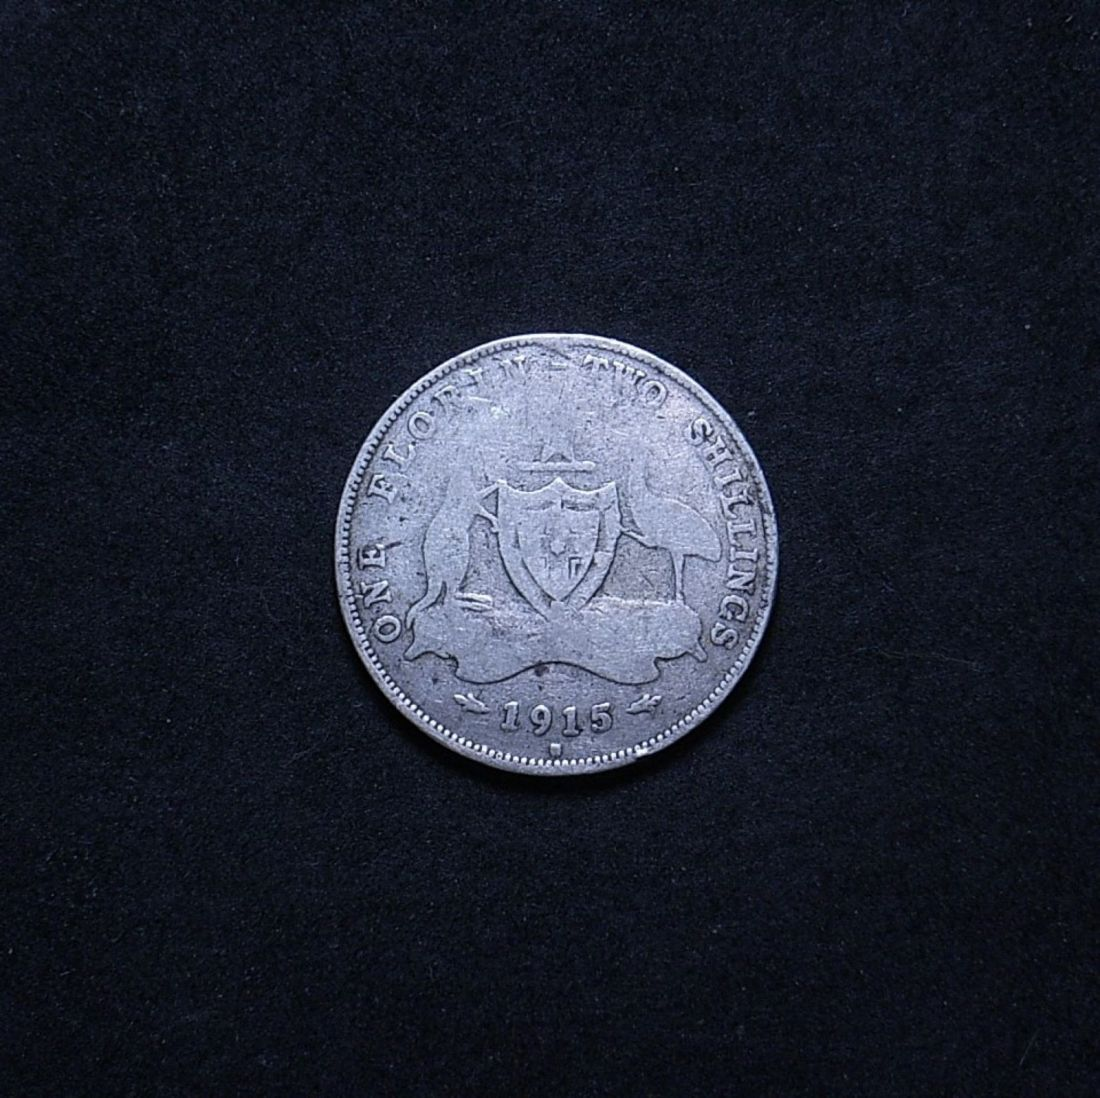 Aus Florin 1915H reverse showing overall appearance